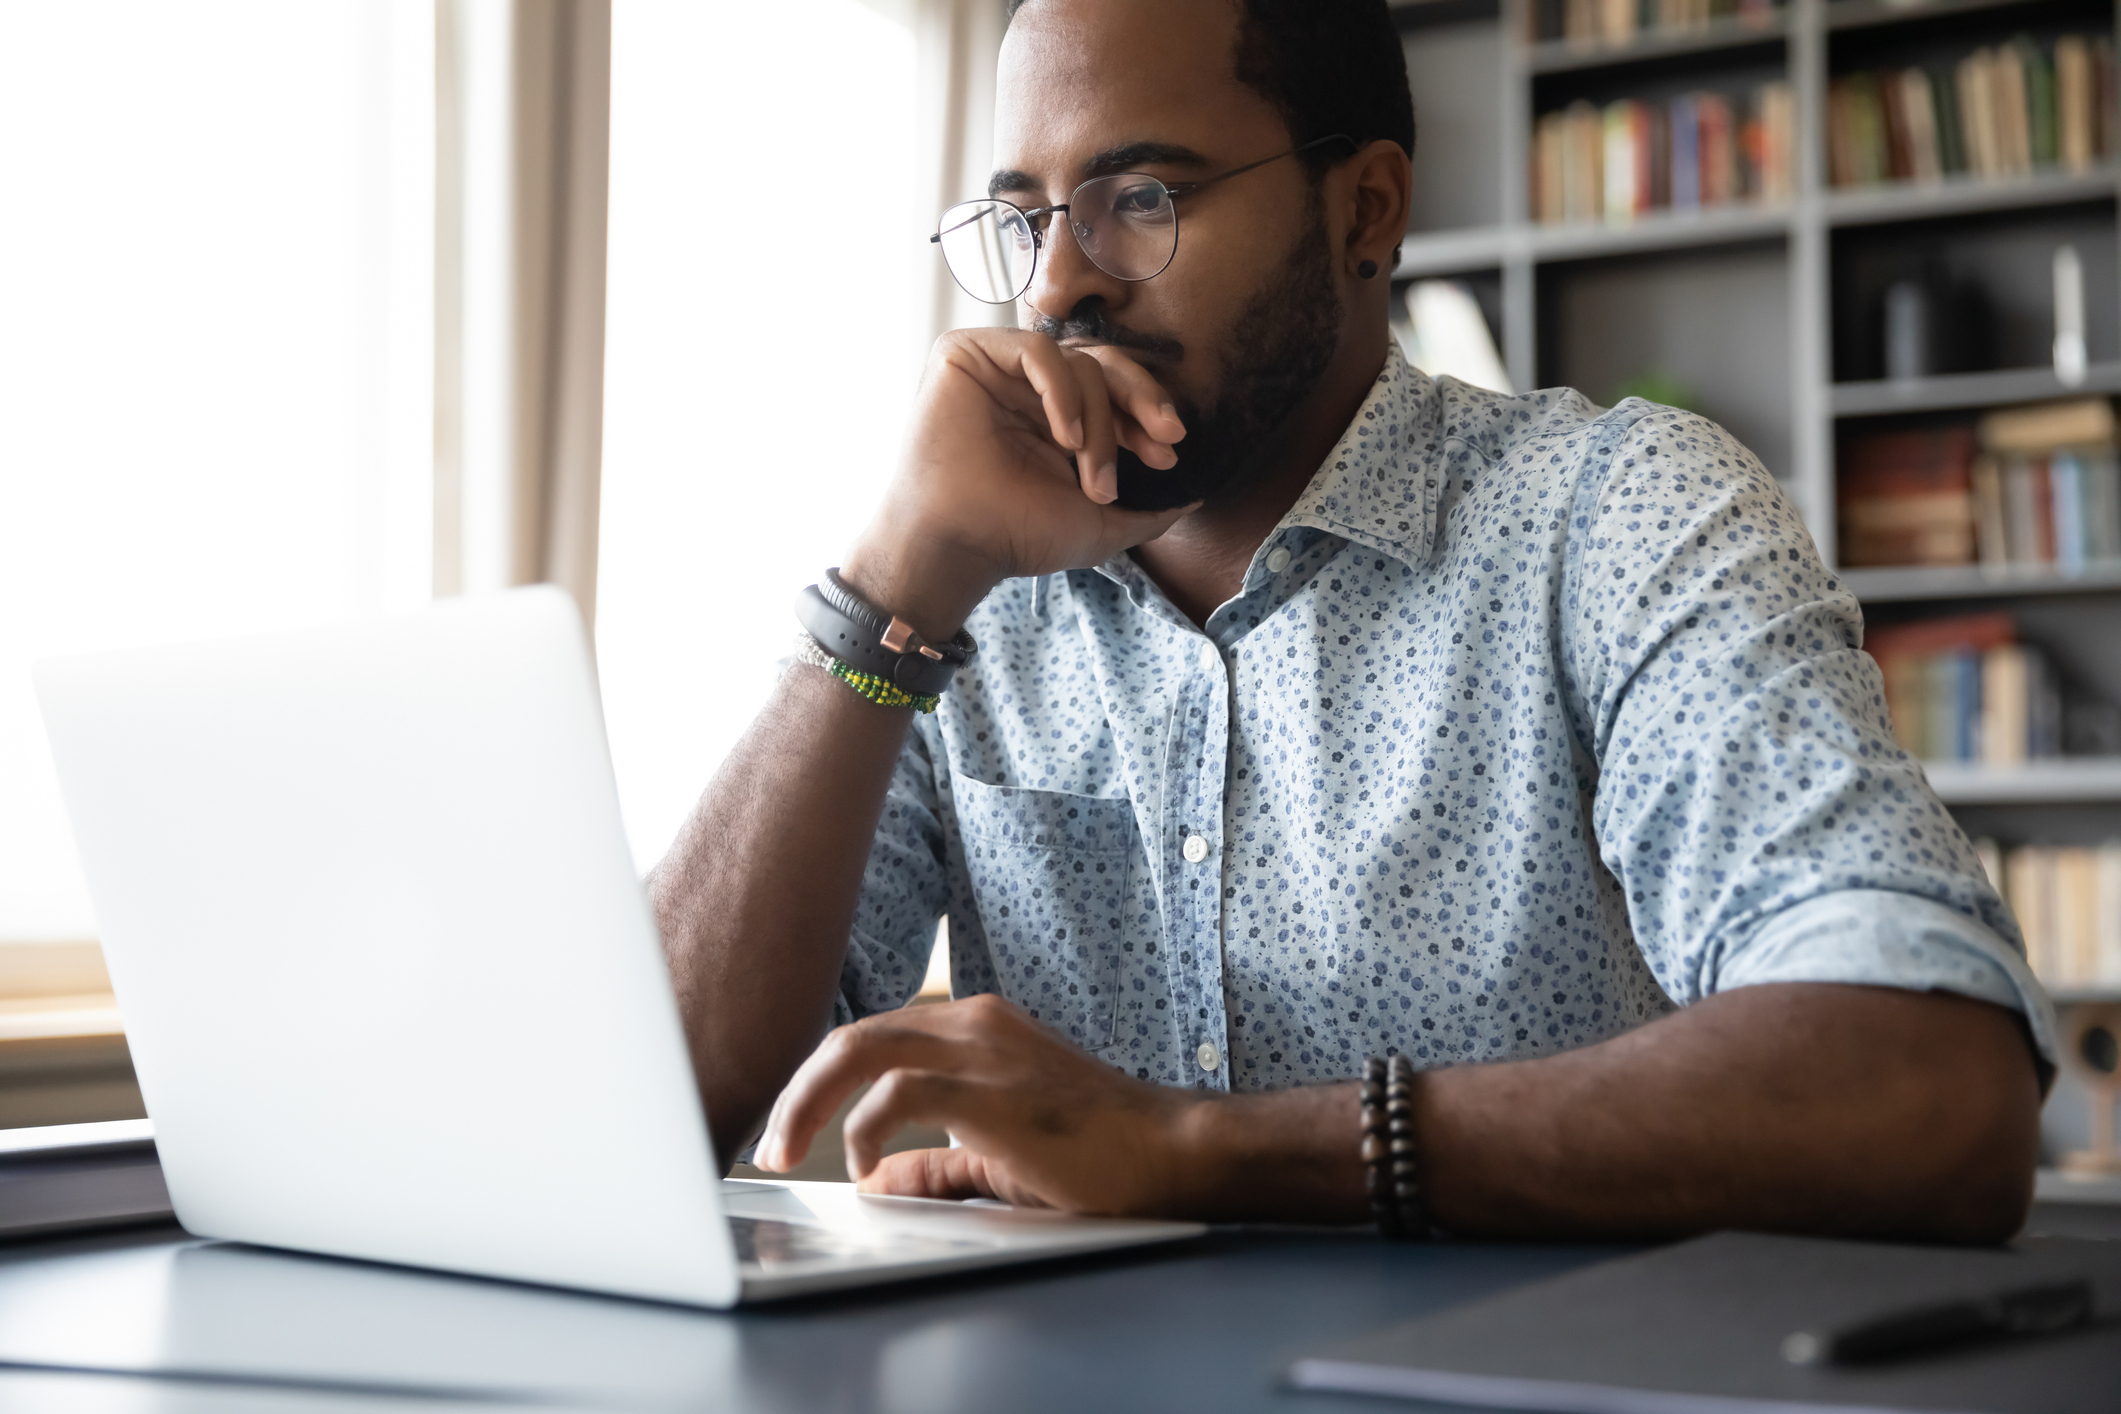 Male African American Business owner looking at his laptop with focus